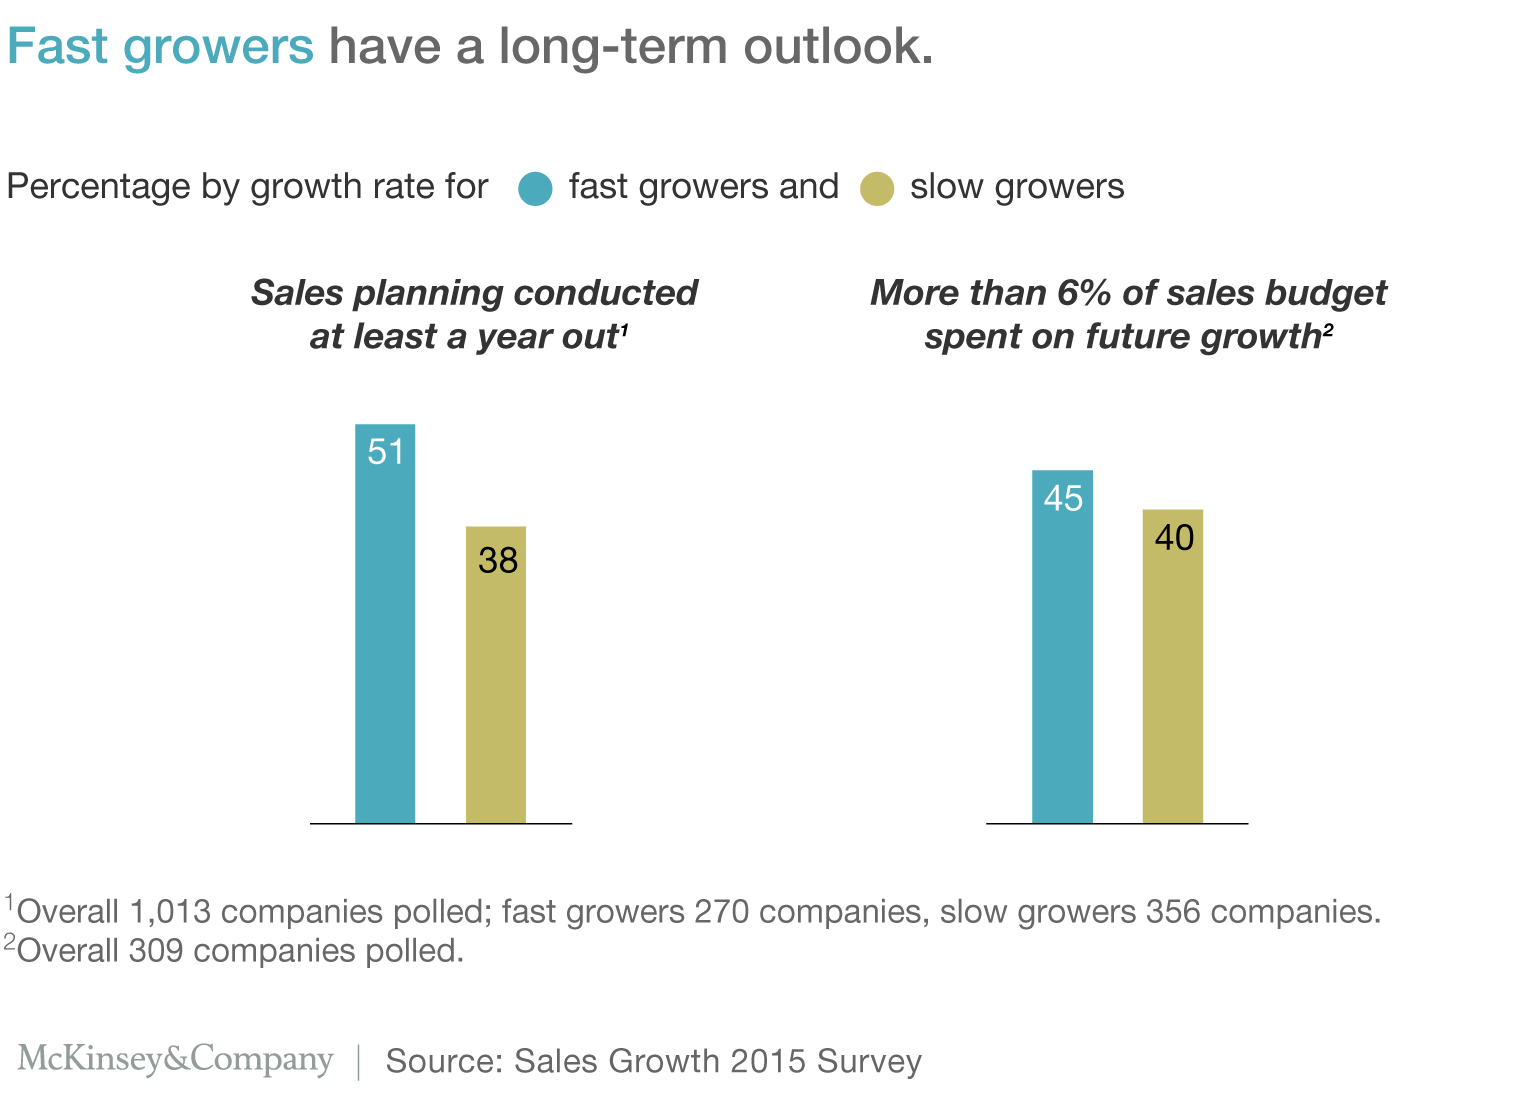 Exhibit 1: Fast growers have a long-term outlook